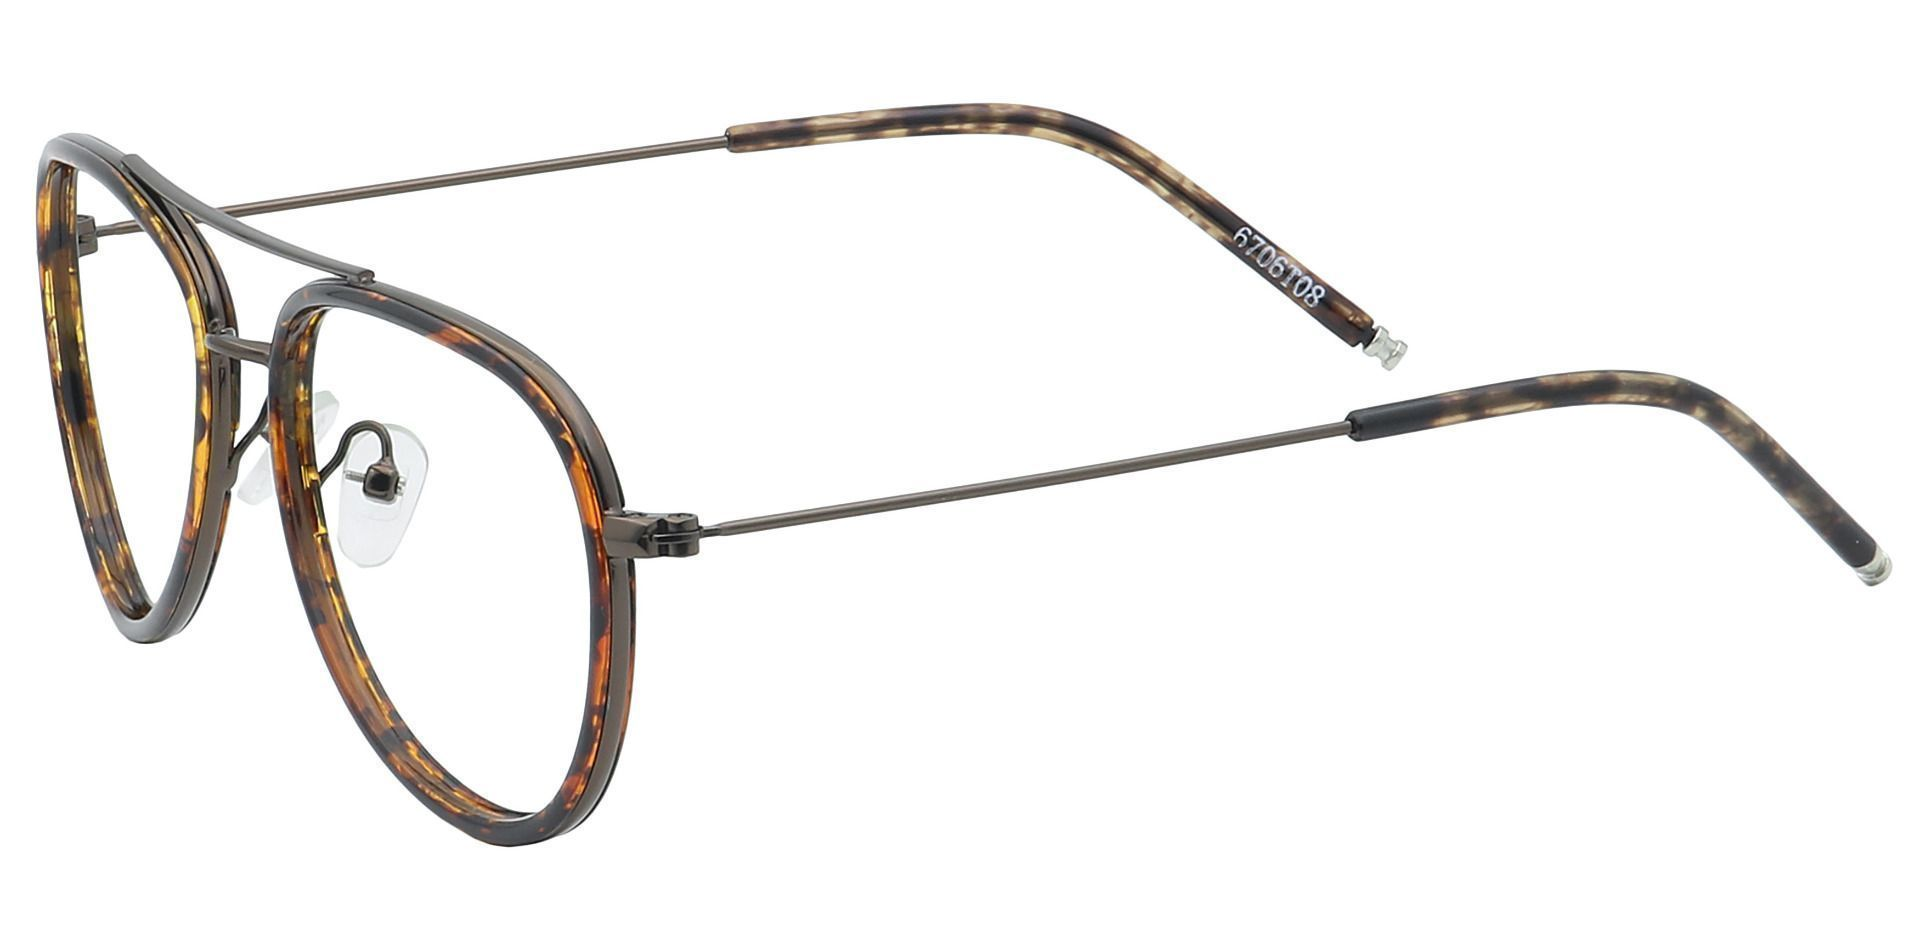 Ace Aviator Reading Glasses - Tortoise